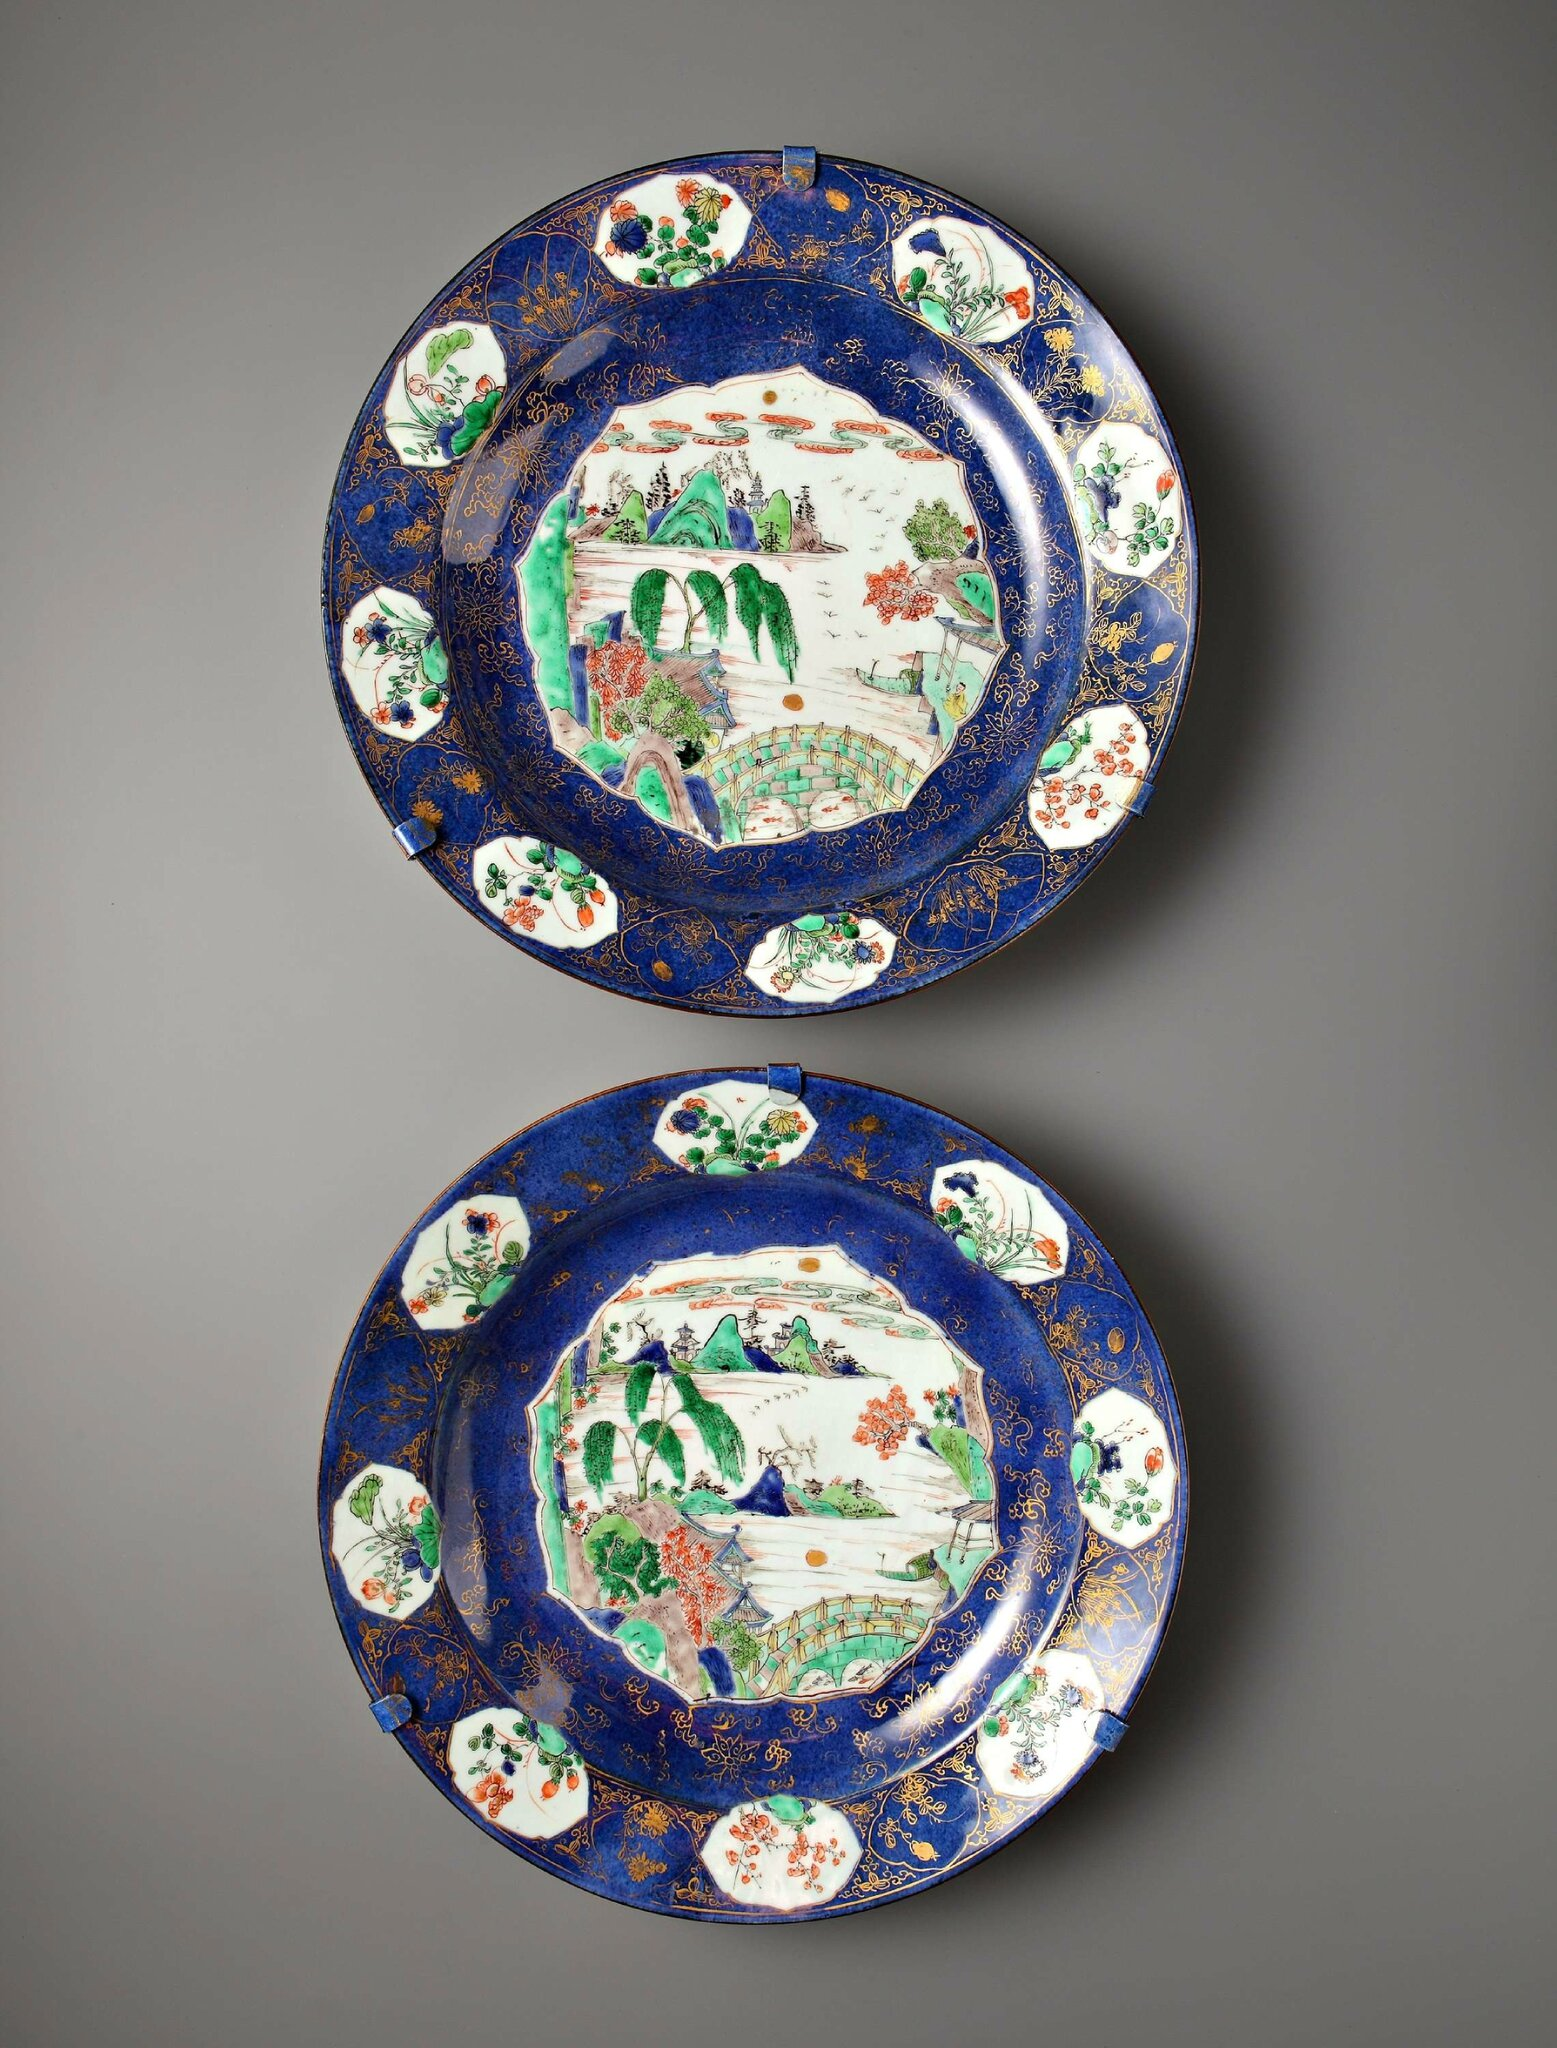 Pair of Powder Blue Plates, China, Kangxi period (1662 – 1722), circa 1700. Photo courtesy Vanderven Oriental Art.